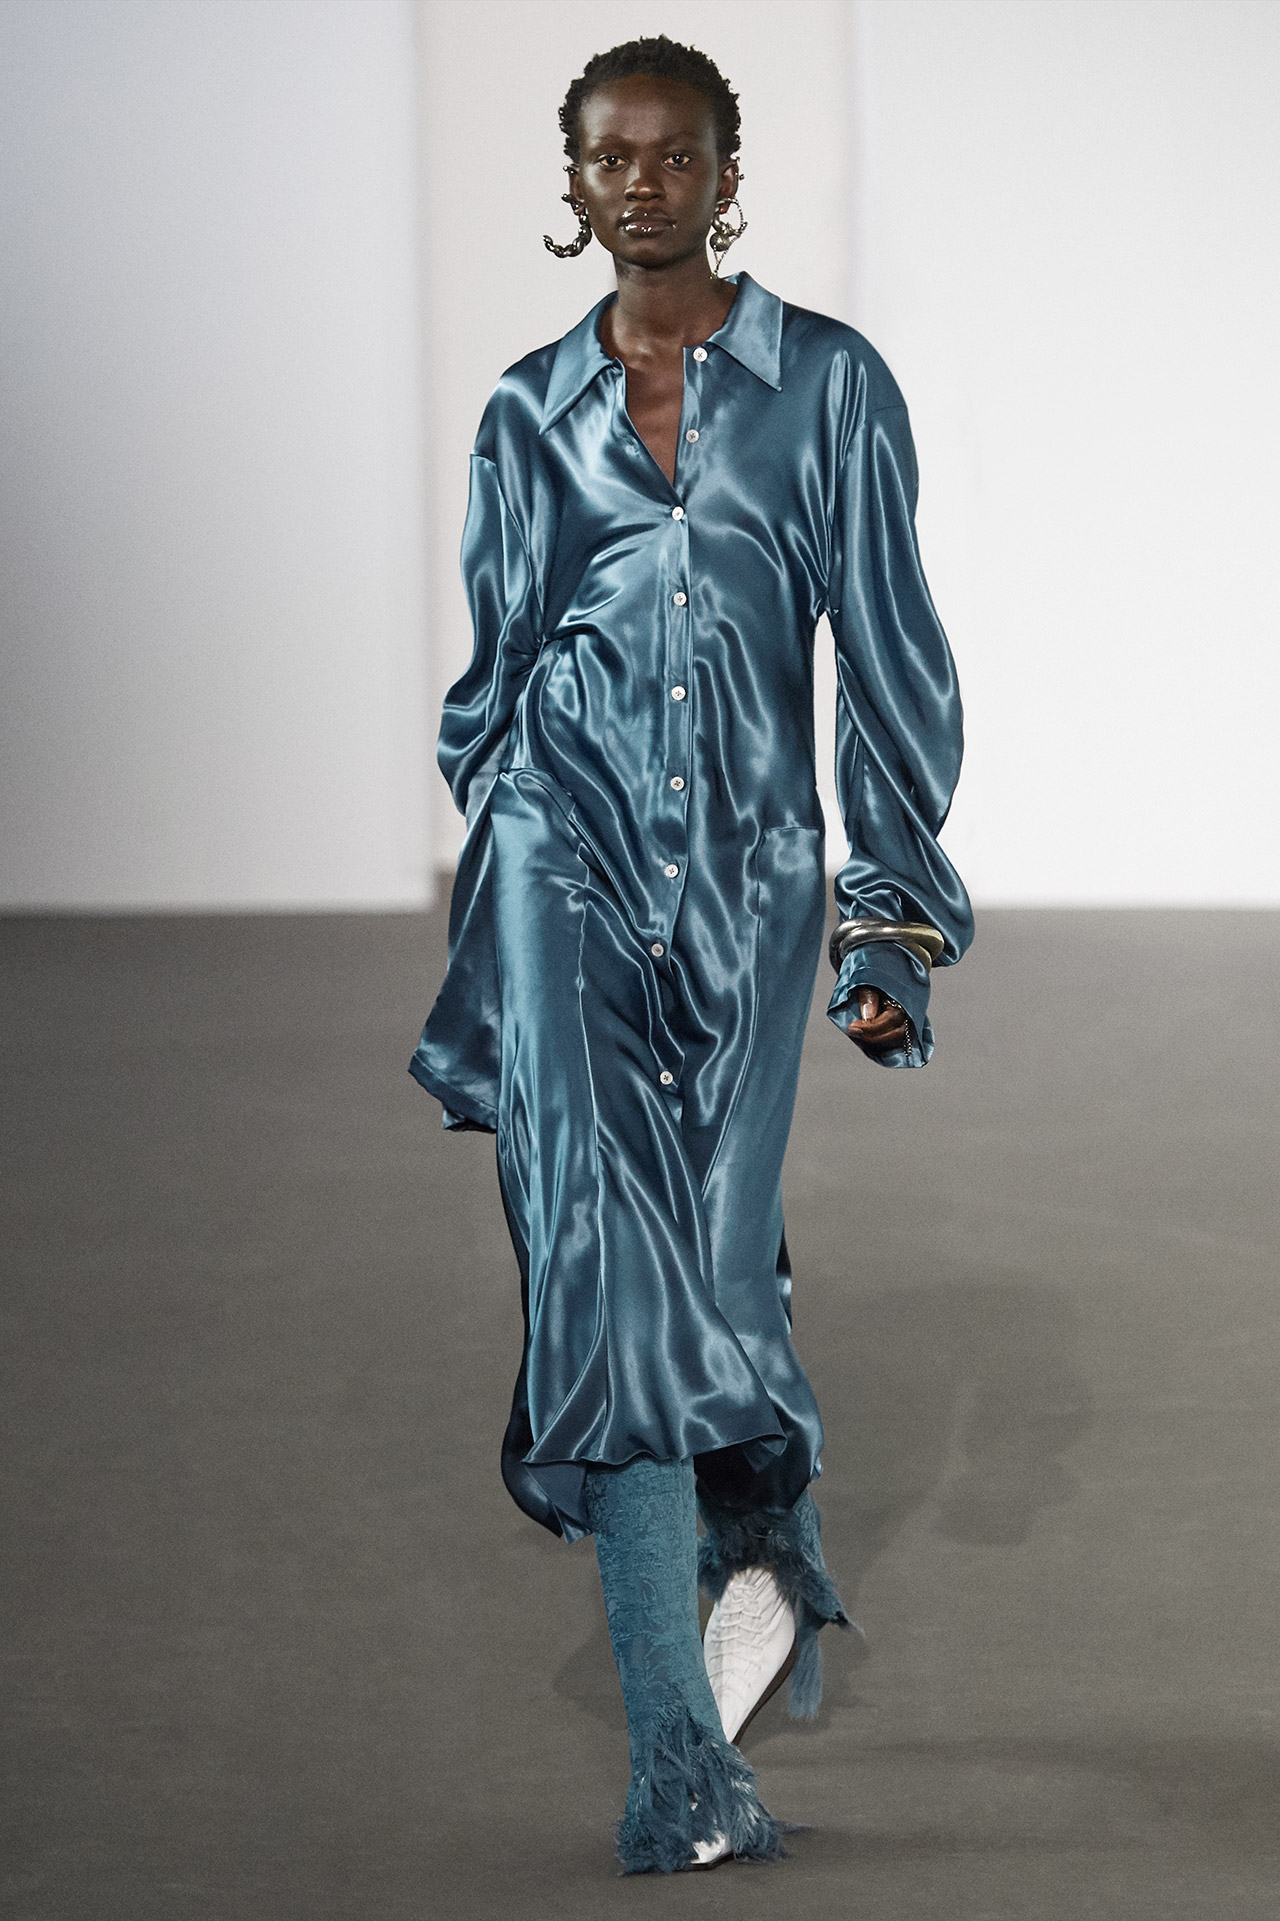 Look Fall/Winter 2020, image 33